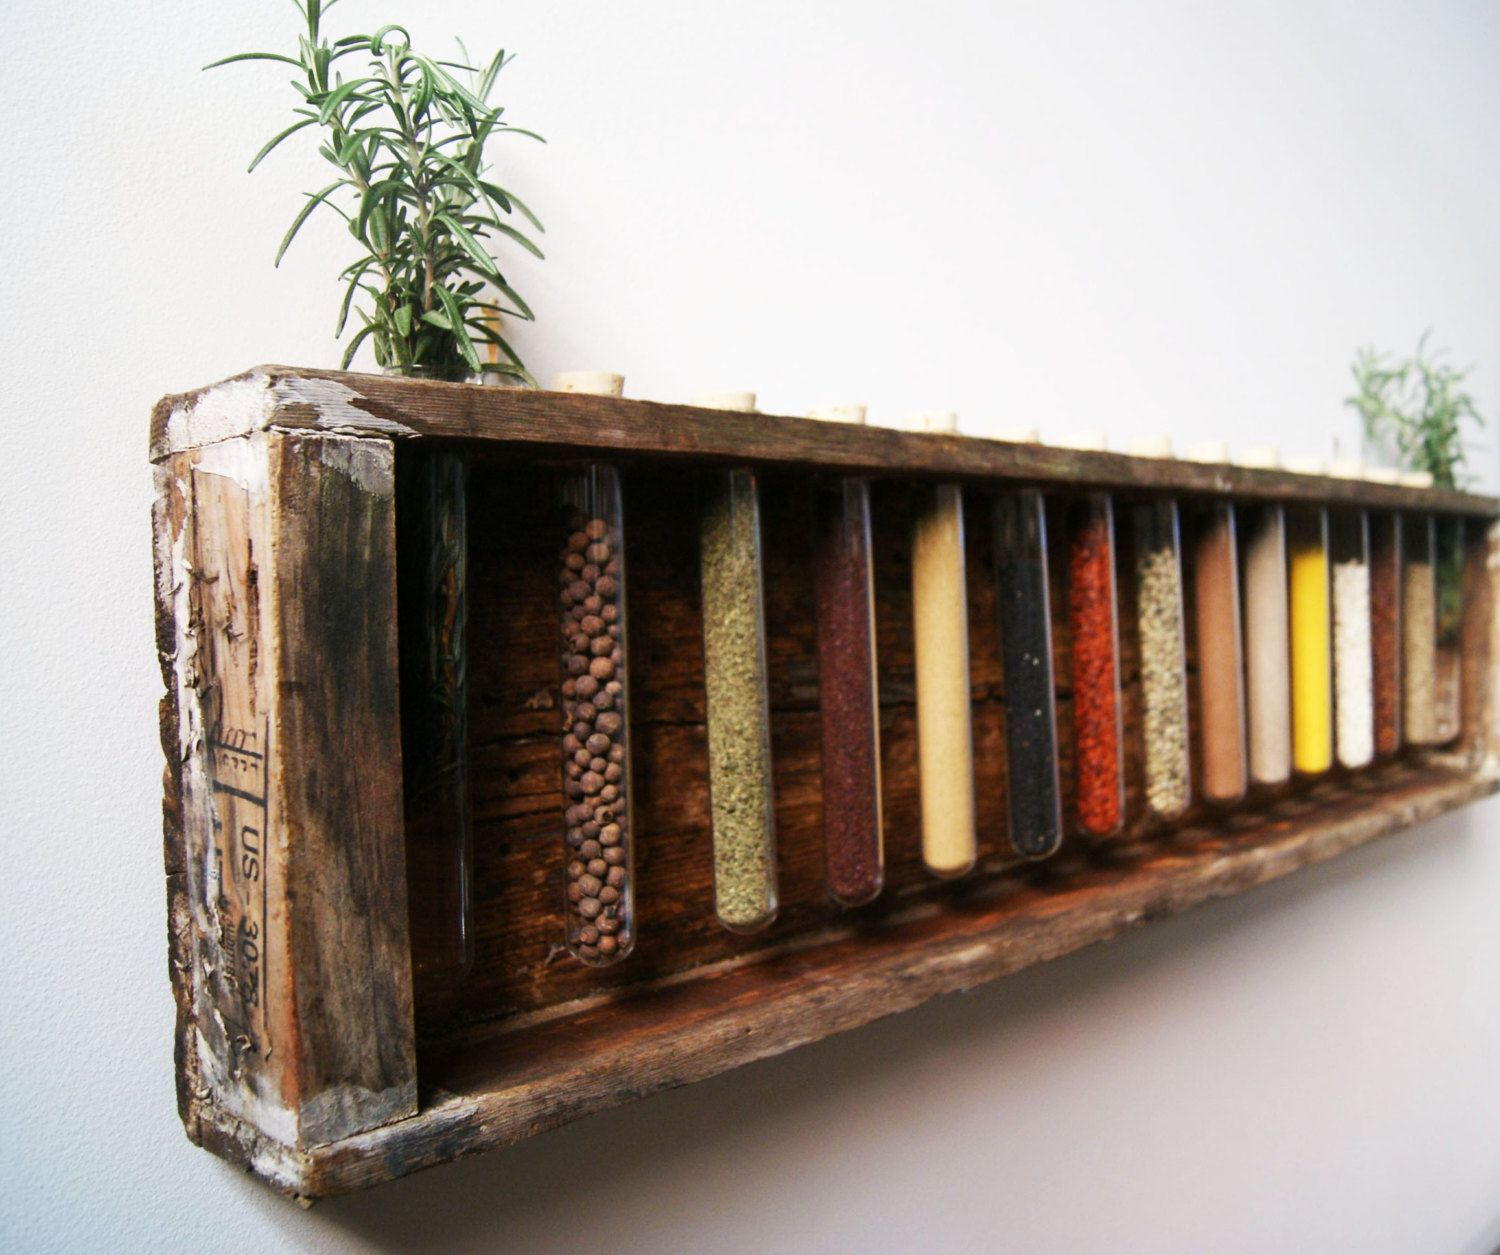 How To Build A Spice Rack Wooden Spice Rack  Wood Ideas  Pinterest  Wooden Spice Rack Test